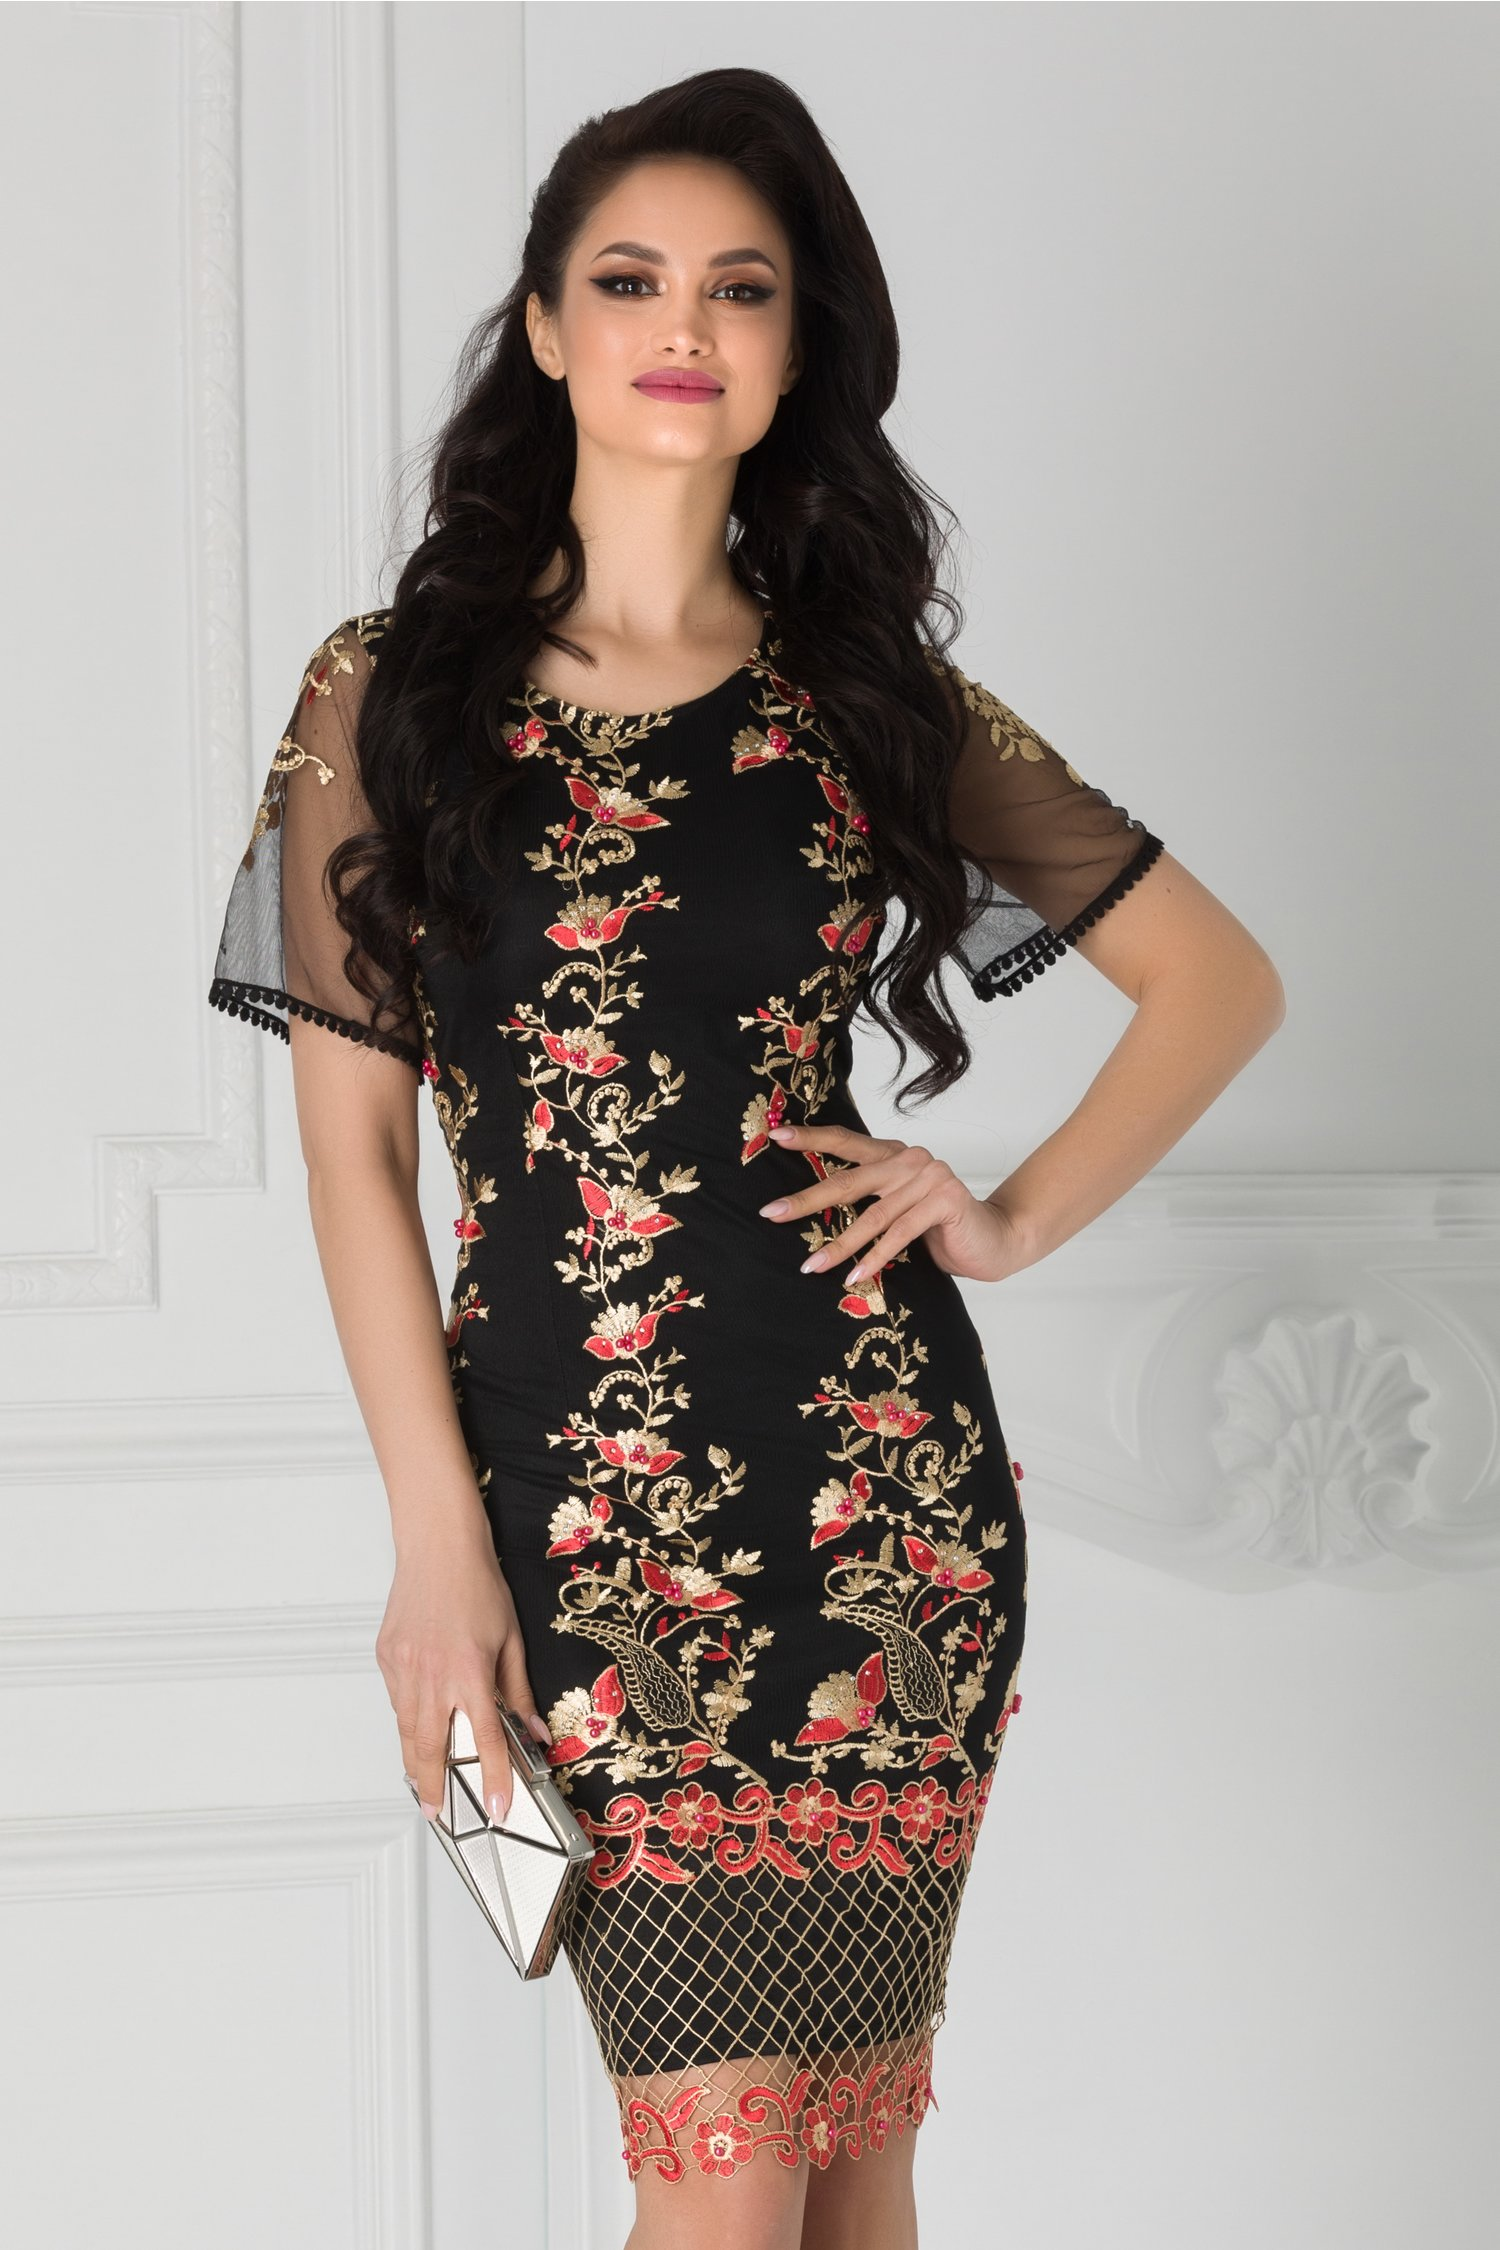 Rochie Taylor neagra cu broderie aurie si margelute rosii